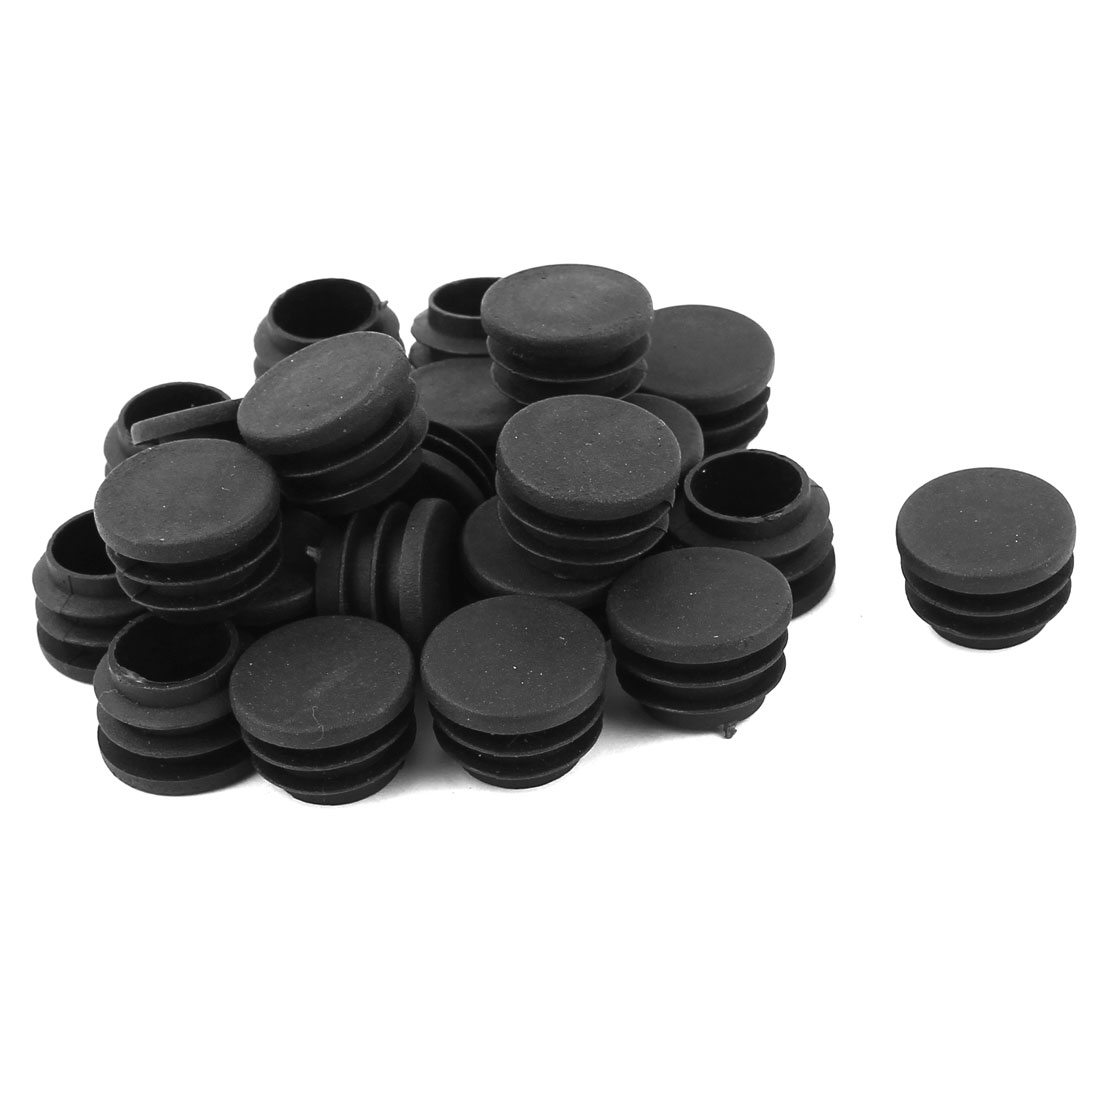 24 Pcs Black Plastic 25mm Dia Round Blanking End Caps Tubing Tube Inserts